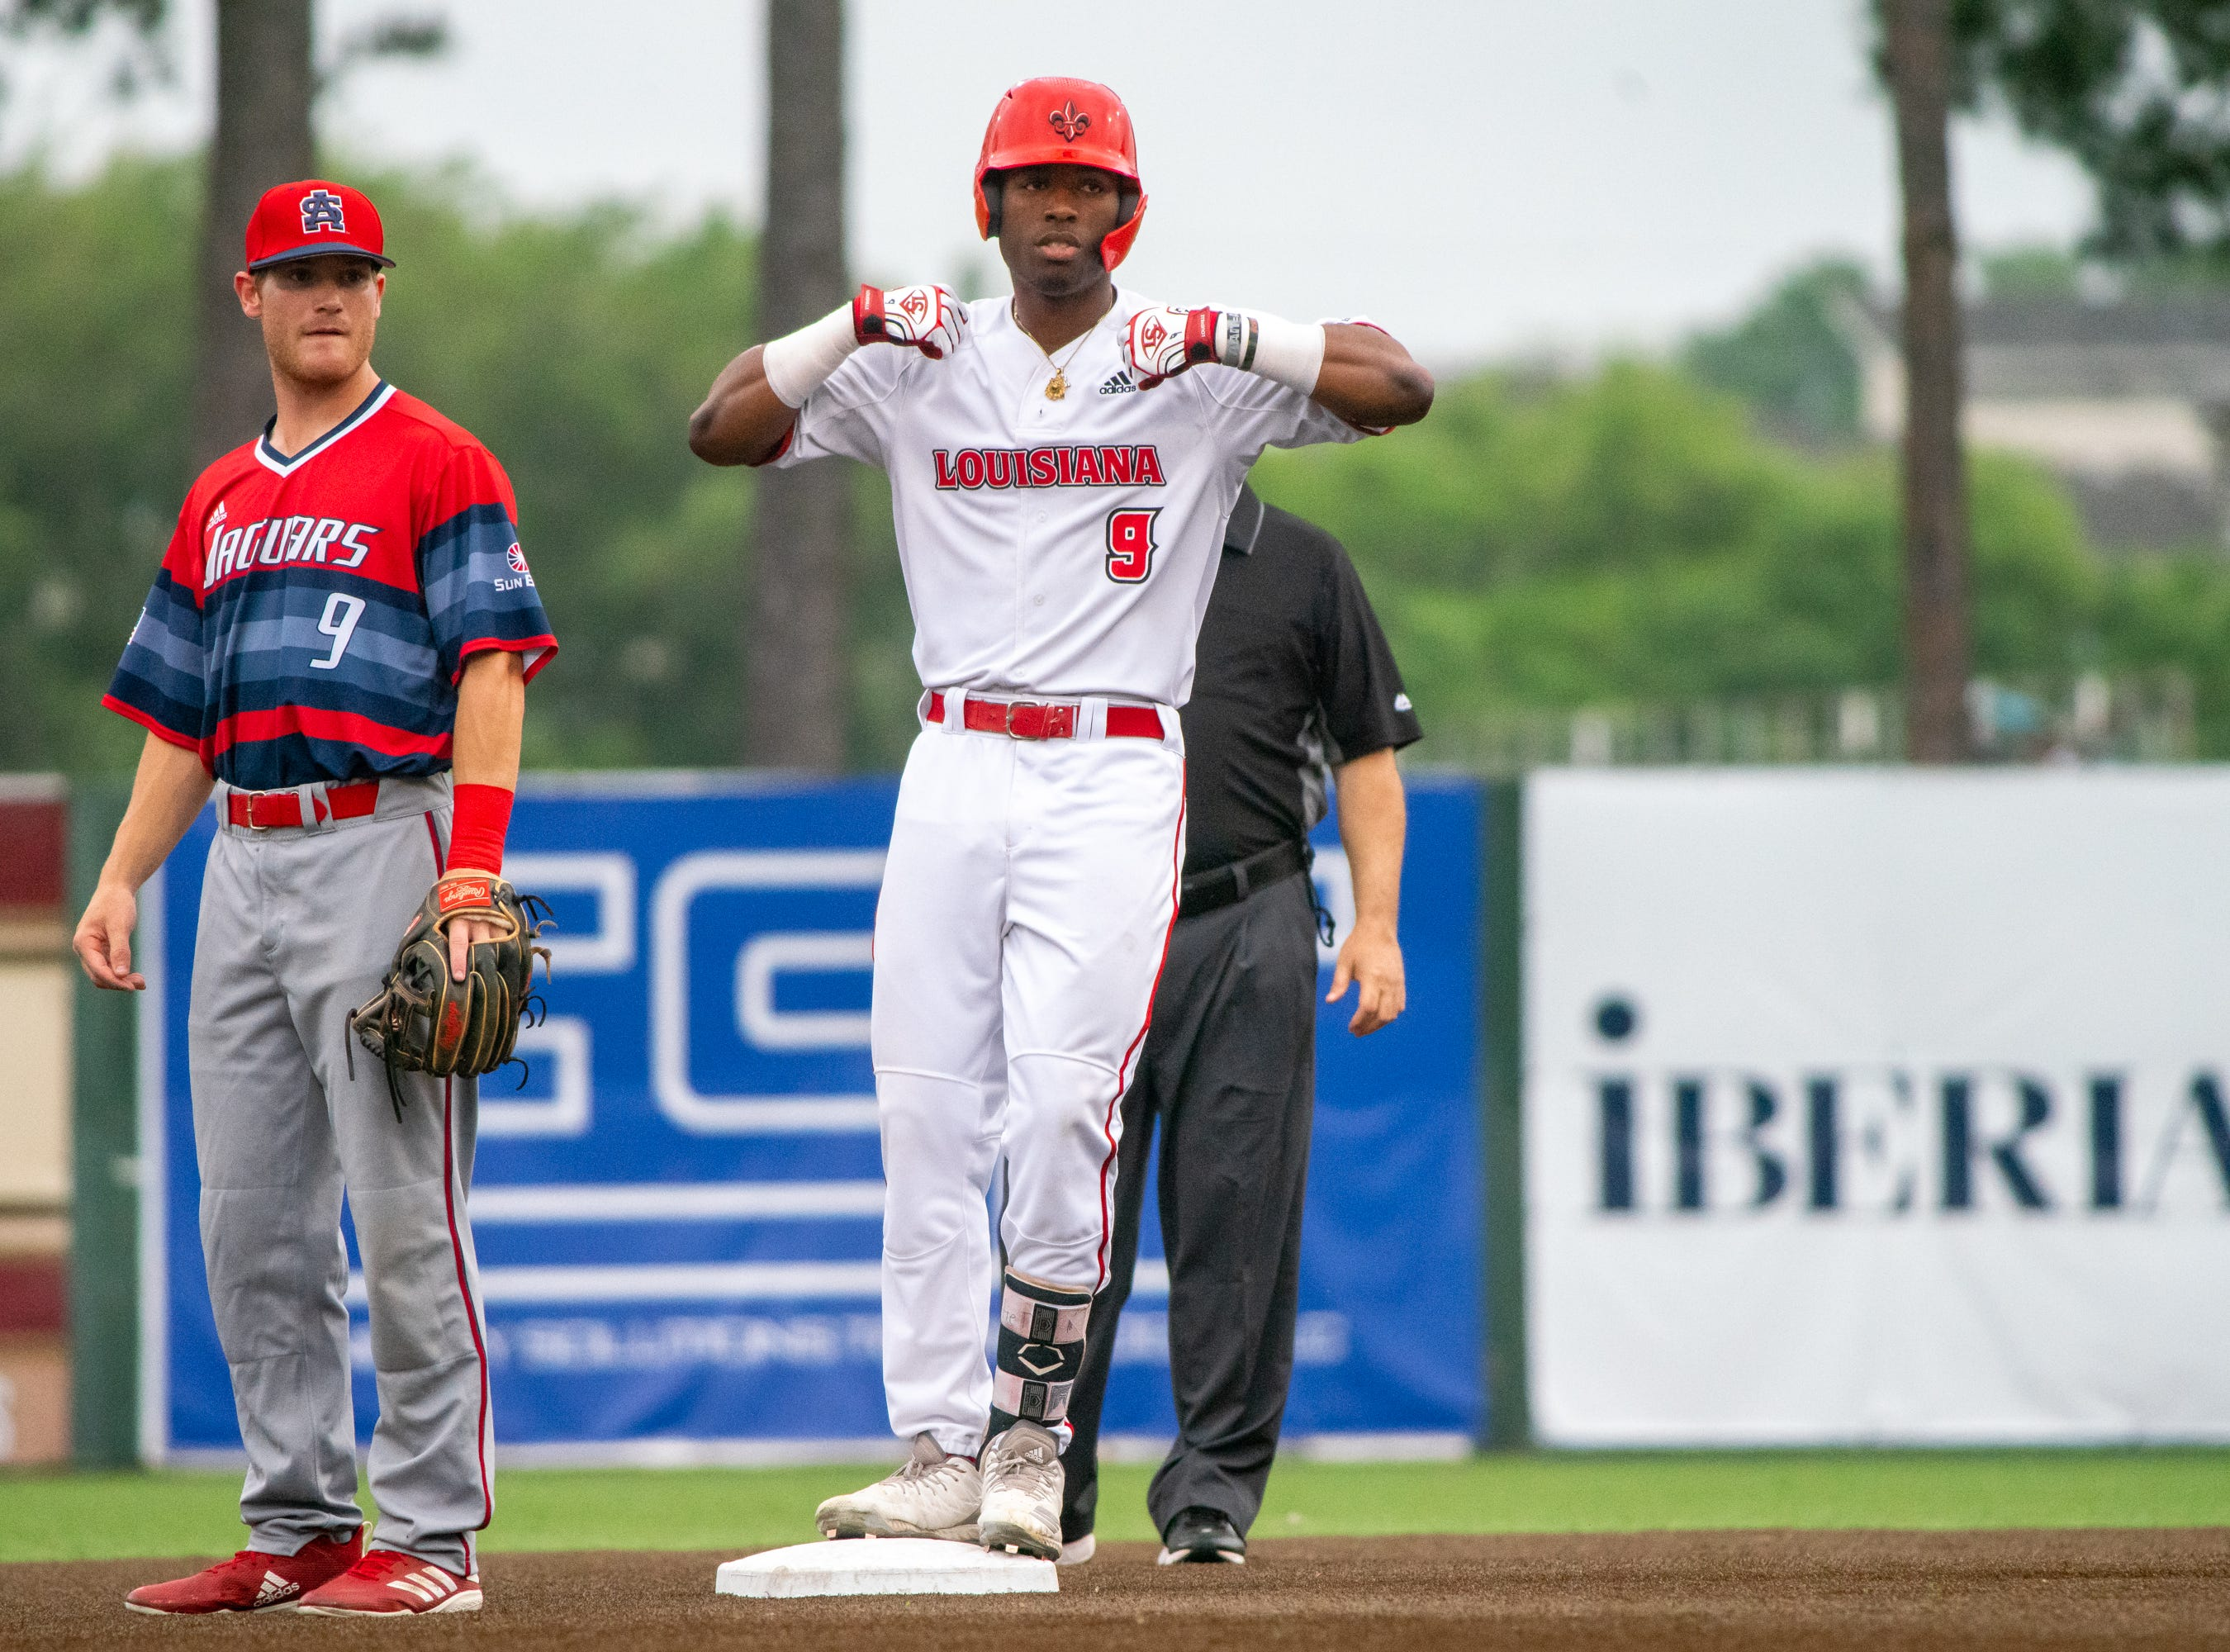 """UL's Todd Lott celebrates his hit on second base as the Ragin' Cajuns take on the South Alabama Jaguars at M.L. """"Tigue"""" Moore Field on Saturday, April 13, 2019."""